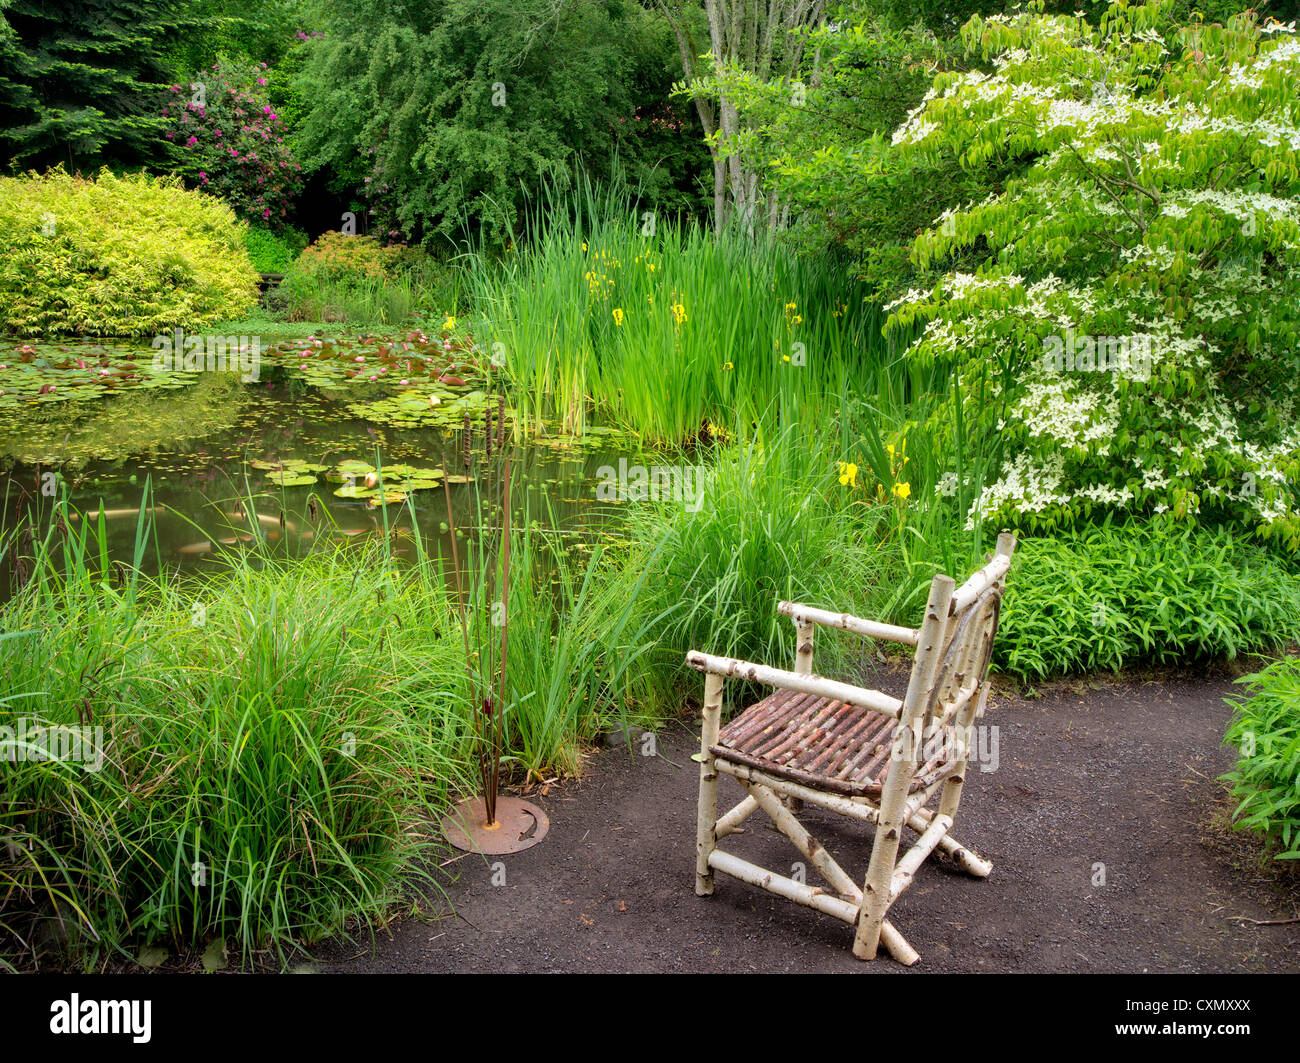 Wood chair and pond. Hughes Water Gardens, Oregon - Stock Image